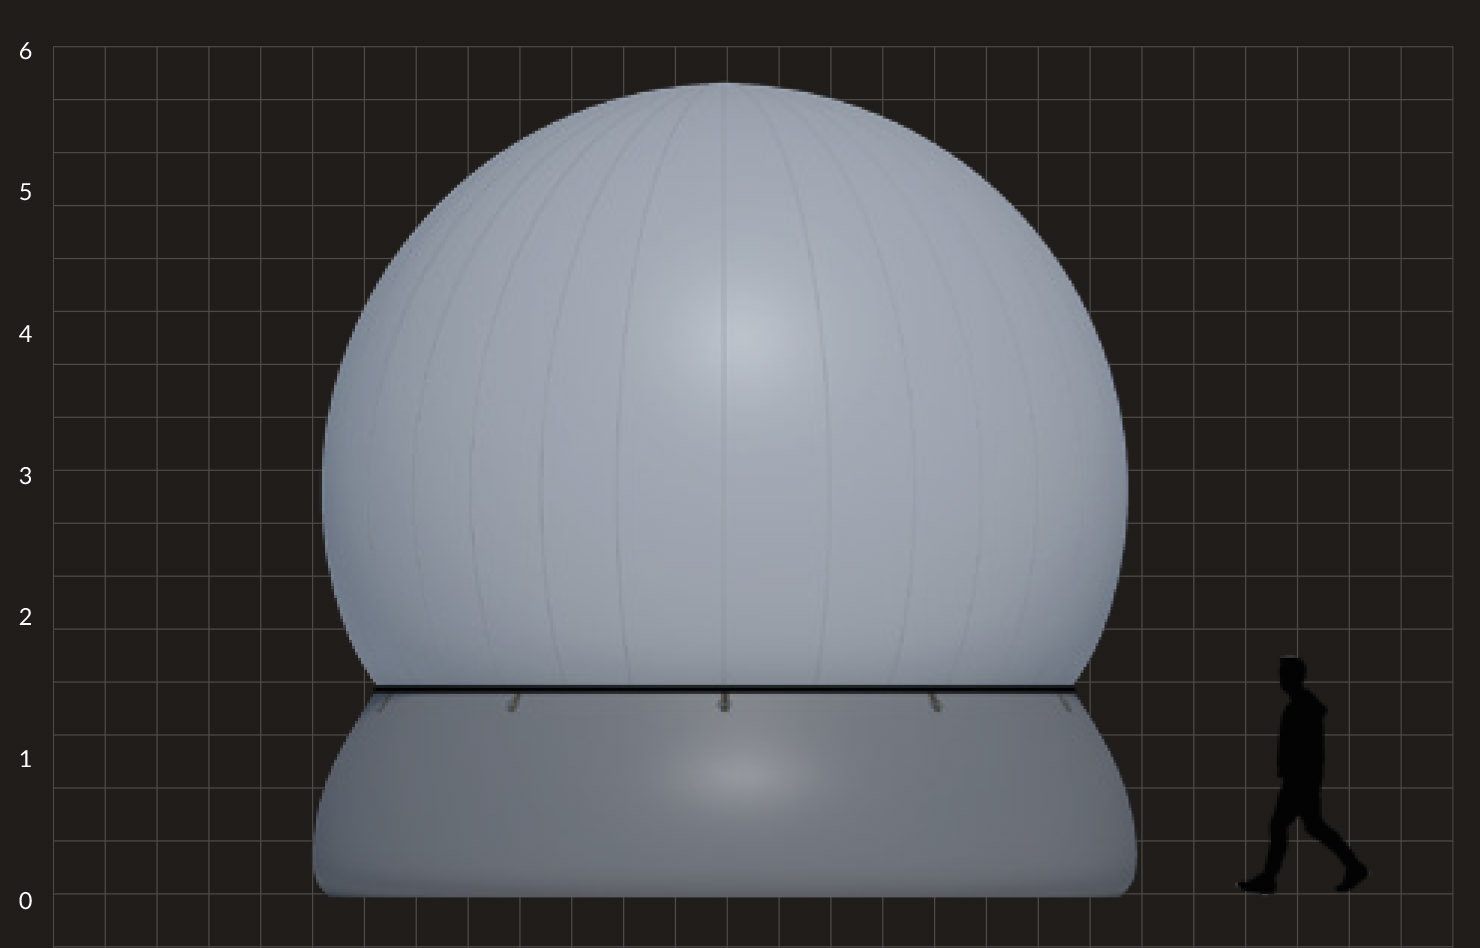 6m Stratosphere, projection mapping dome, temporary structure. Projection sphere for 360 content